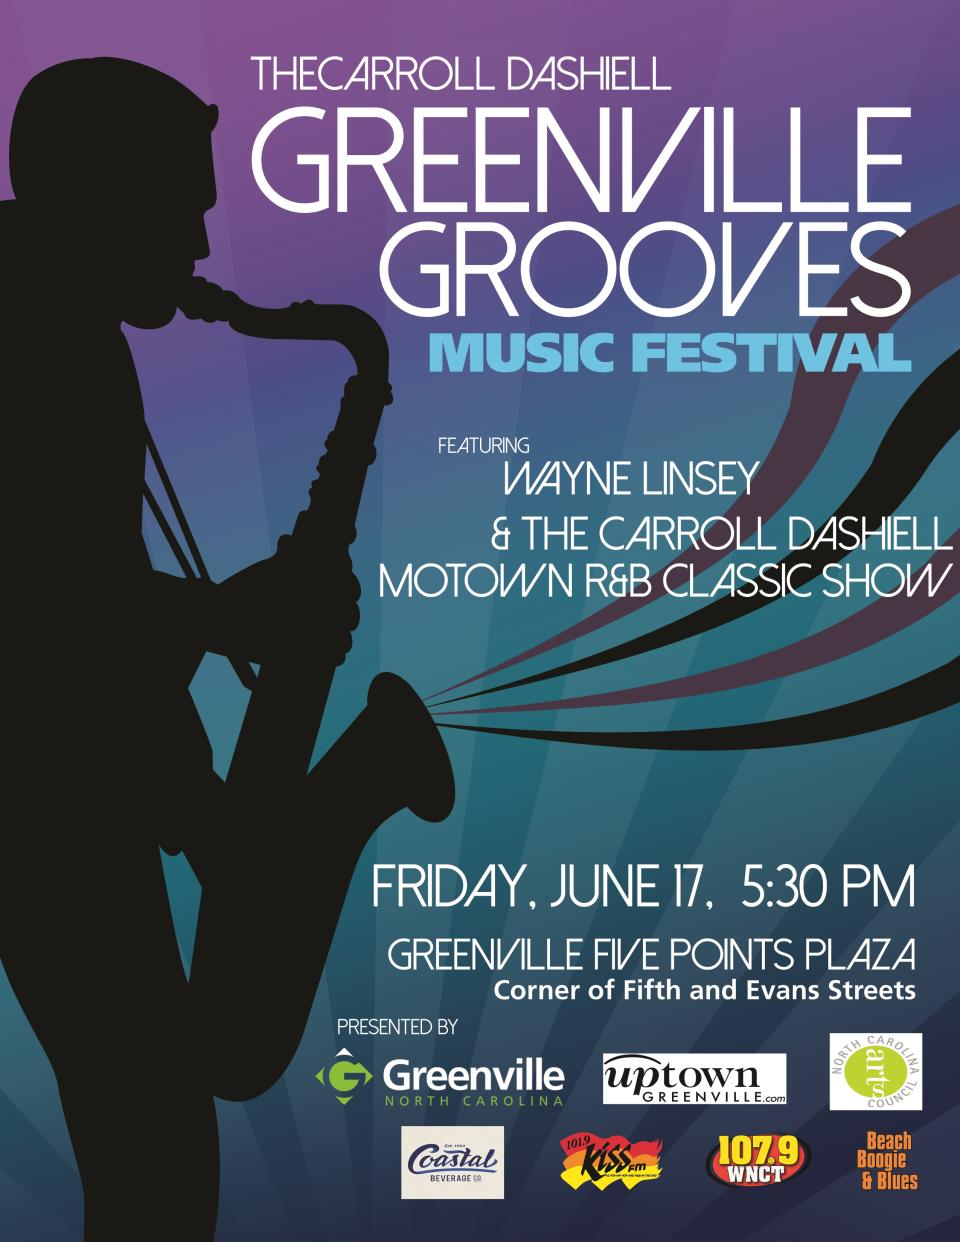 Greenville Getting Ready to Groove Again